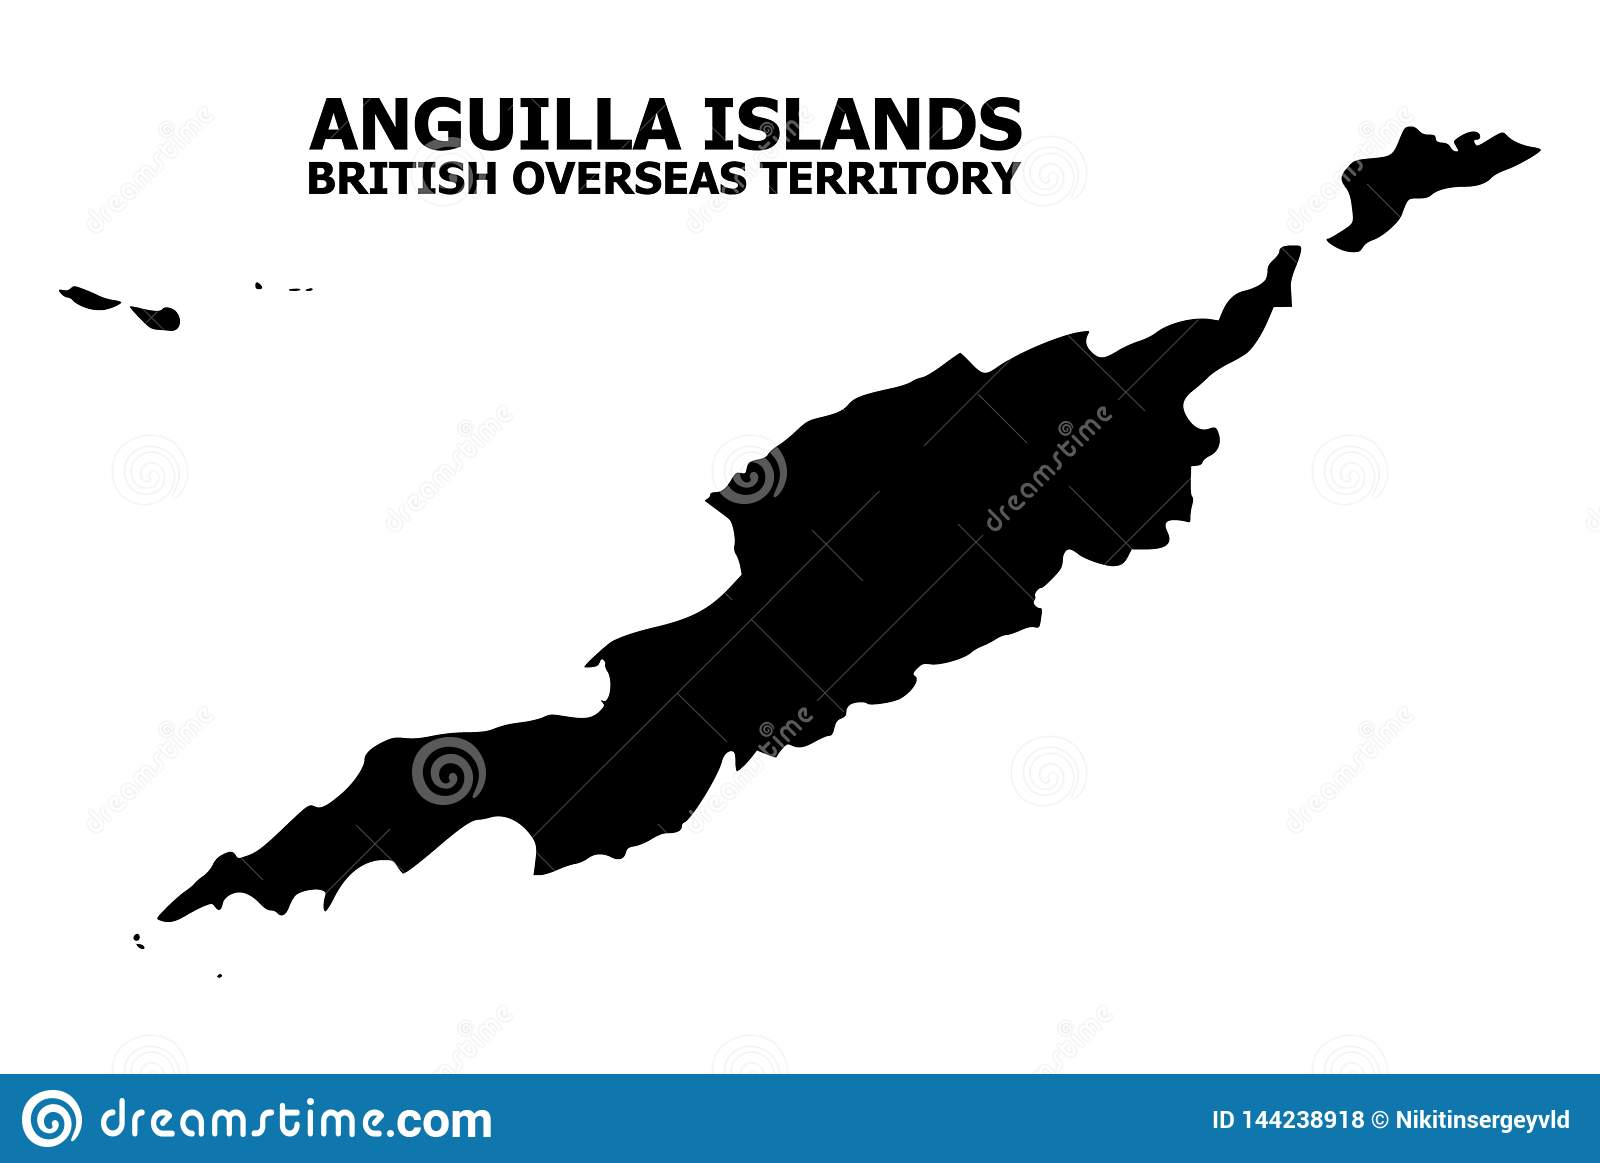 Vector Flat Map Of Anguilla Islands With Name Stock Vector ... on map of montserrat, map of st barts, map of martinique, map of caribbean, map of antigua, map of st maarten, map of jamaica, map of french southern territories, map of aruba, map of the bahamas, map of the south sandwich islands, map of dominica, map of guadeloupe, map of cuba, map of st martin, map of argentina, map of barbados, map of costa rica, map of nepal,